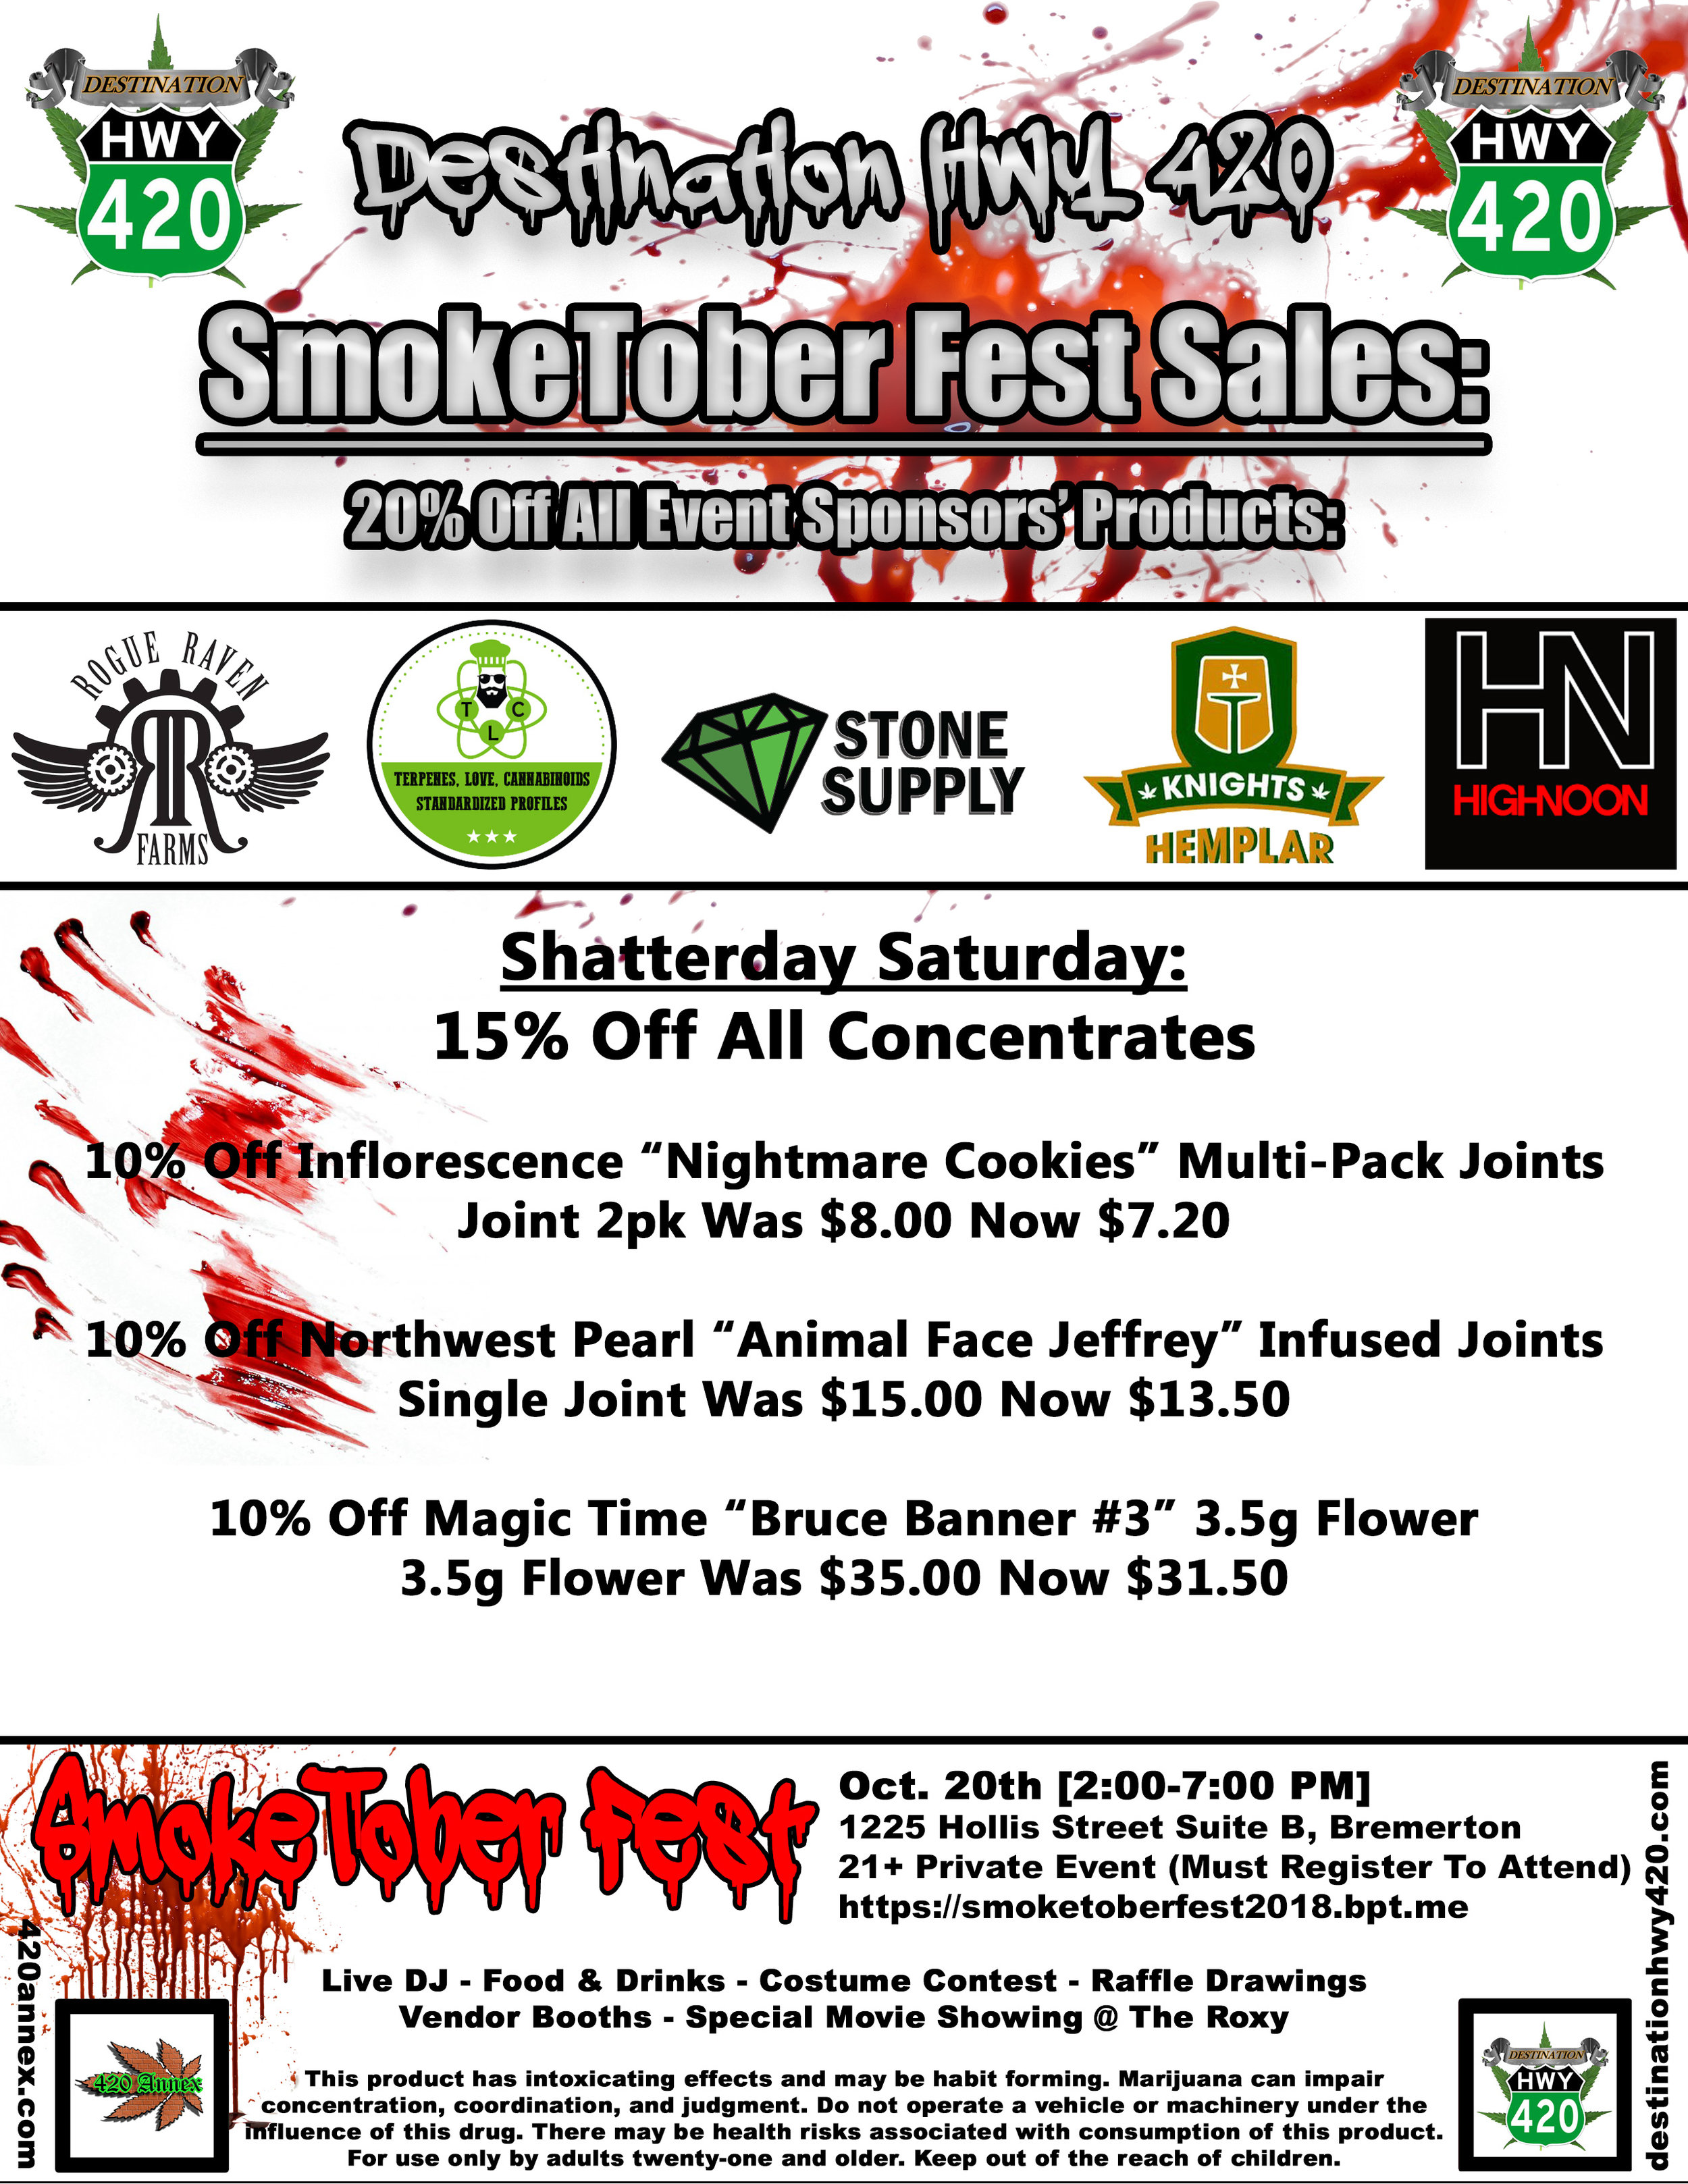 """Here are the sales for SmokeTober Fest at Destination HWY 420 in East Bremerton. Make sure to check out our sales on all of the products from our marijuana producers and processors sponsoring the event. Join us this Saturday for music, food, drinks, costume contests, raffle drawings, cannabis vendor booths, and a special movie showing at the Historic Roxy in downtown Bremerton. We look forward to seeing you all tomorrow at Kitsap County's first ever """"SmokeTober Fest""""!"""